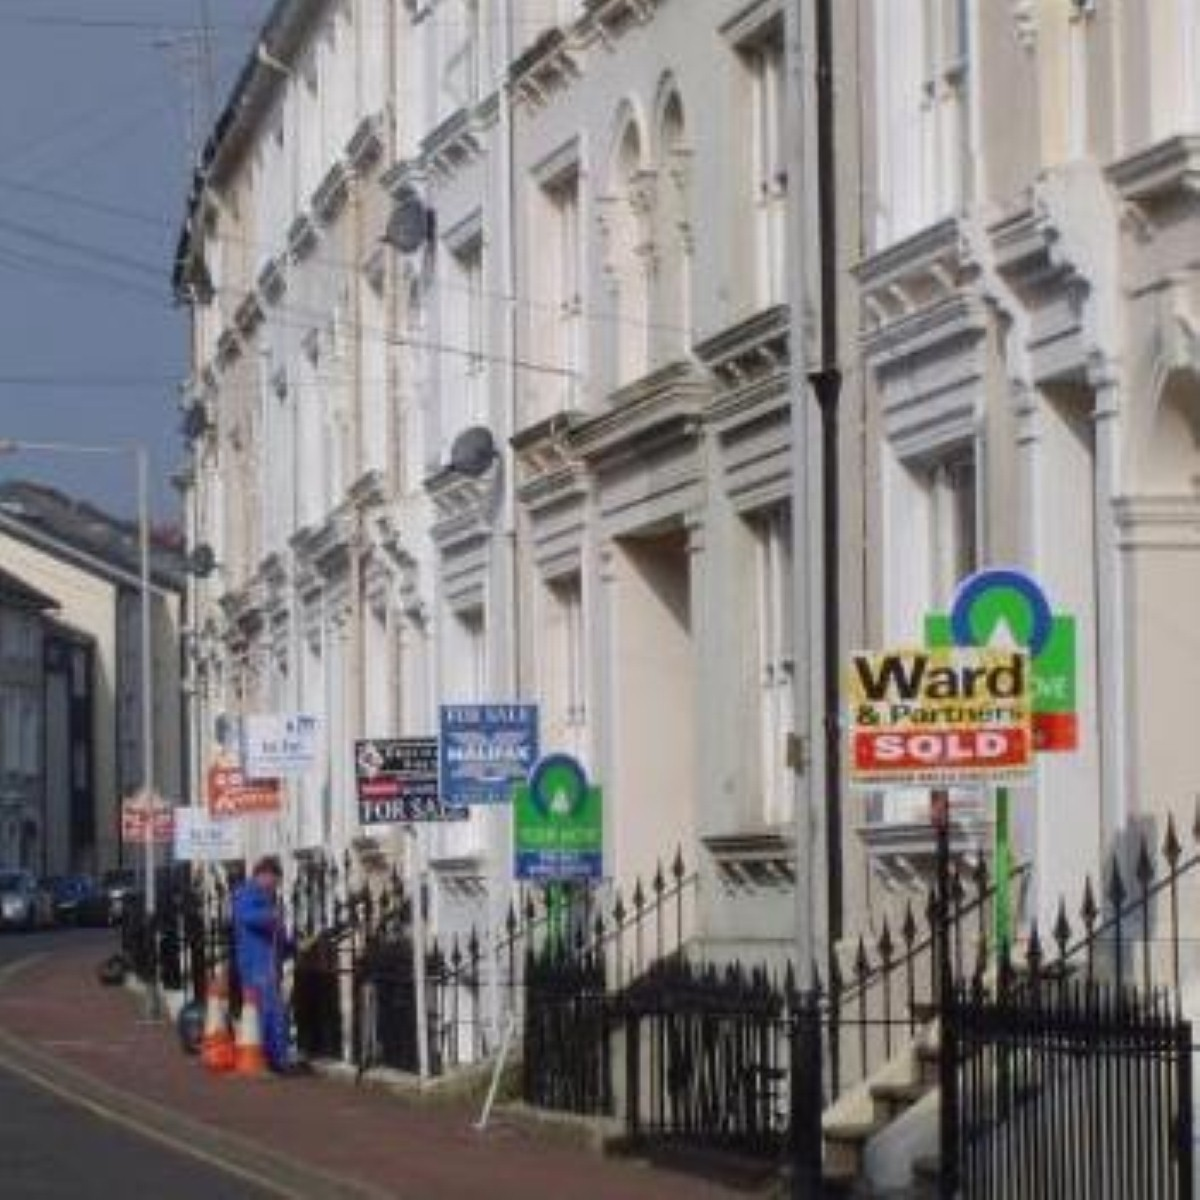 House prices have been fairly stable in 2011 - but not for the right reasons